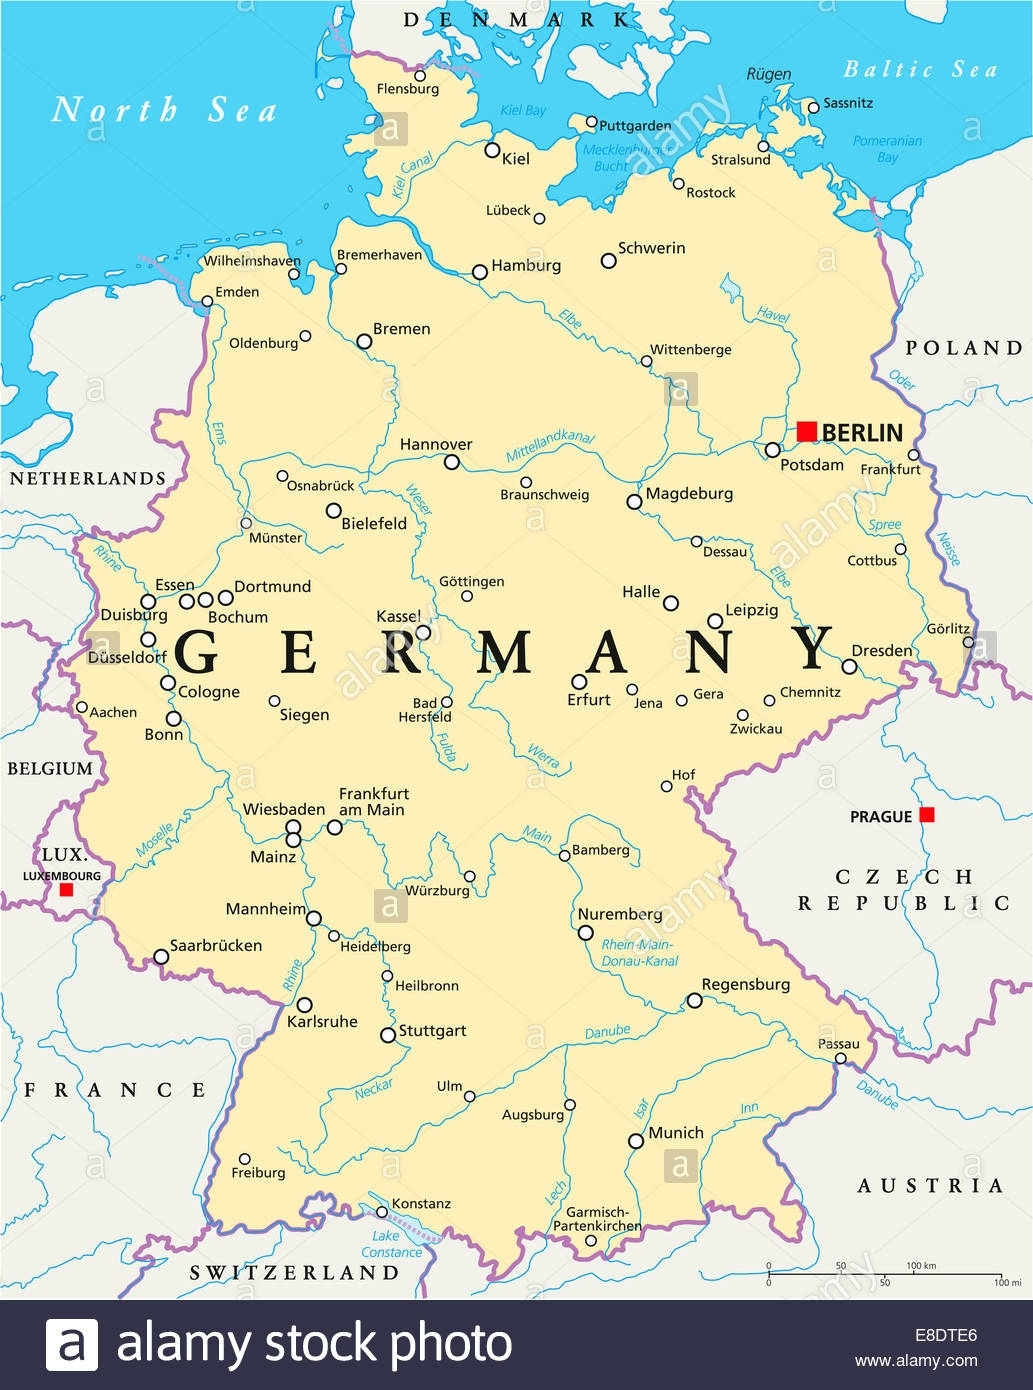 Germany Political Map With Capital Berlin, National Borders, Most throughout Map Of Germany In English